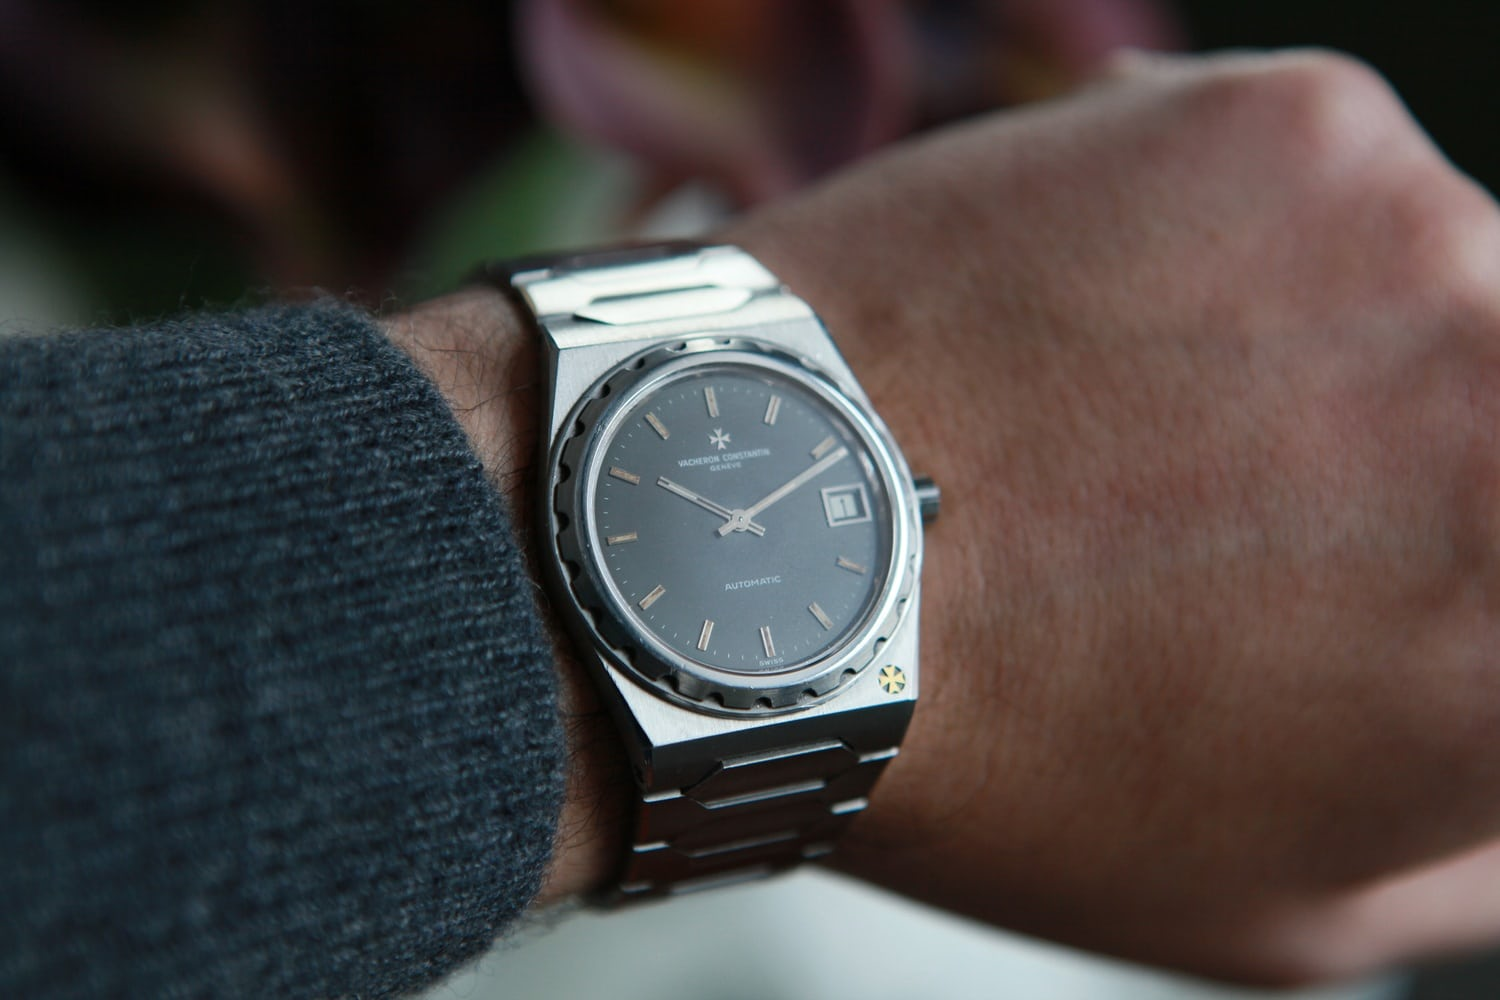 The Watch I Wore The Most In 2013 By Every Single Member Of The